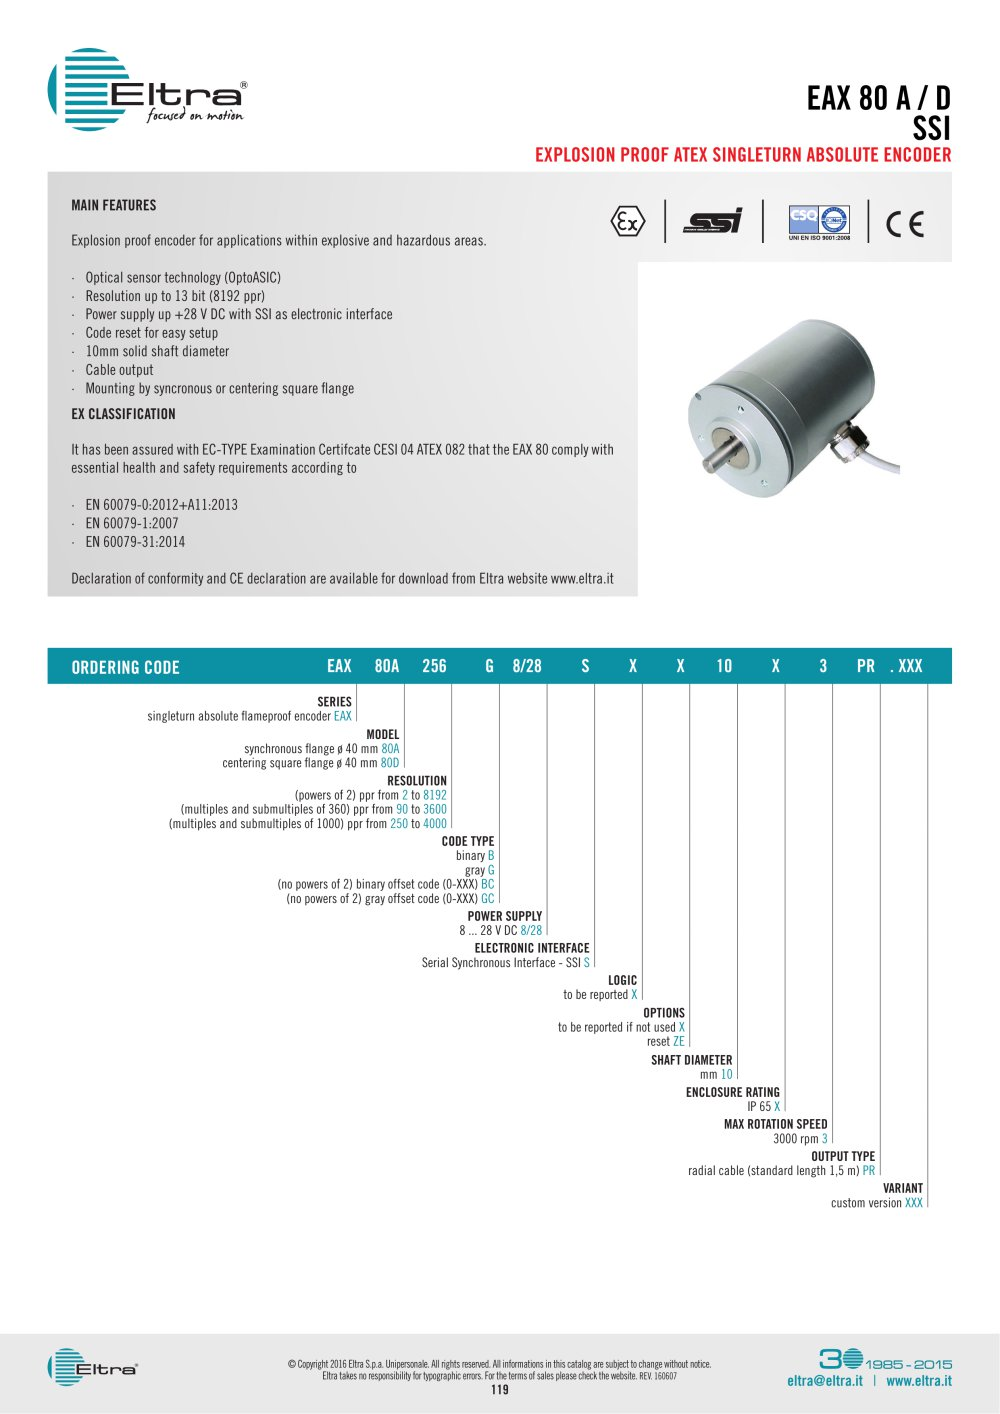 Ssi check schedule 2014 array eax 80 a d ssi eltra s p a pdf catalogue technical rh pdf directindustry com fandeluxe Gallery